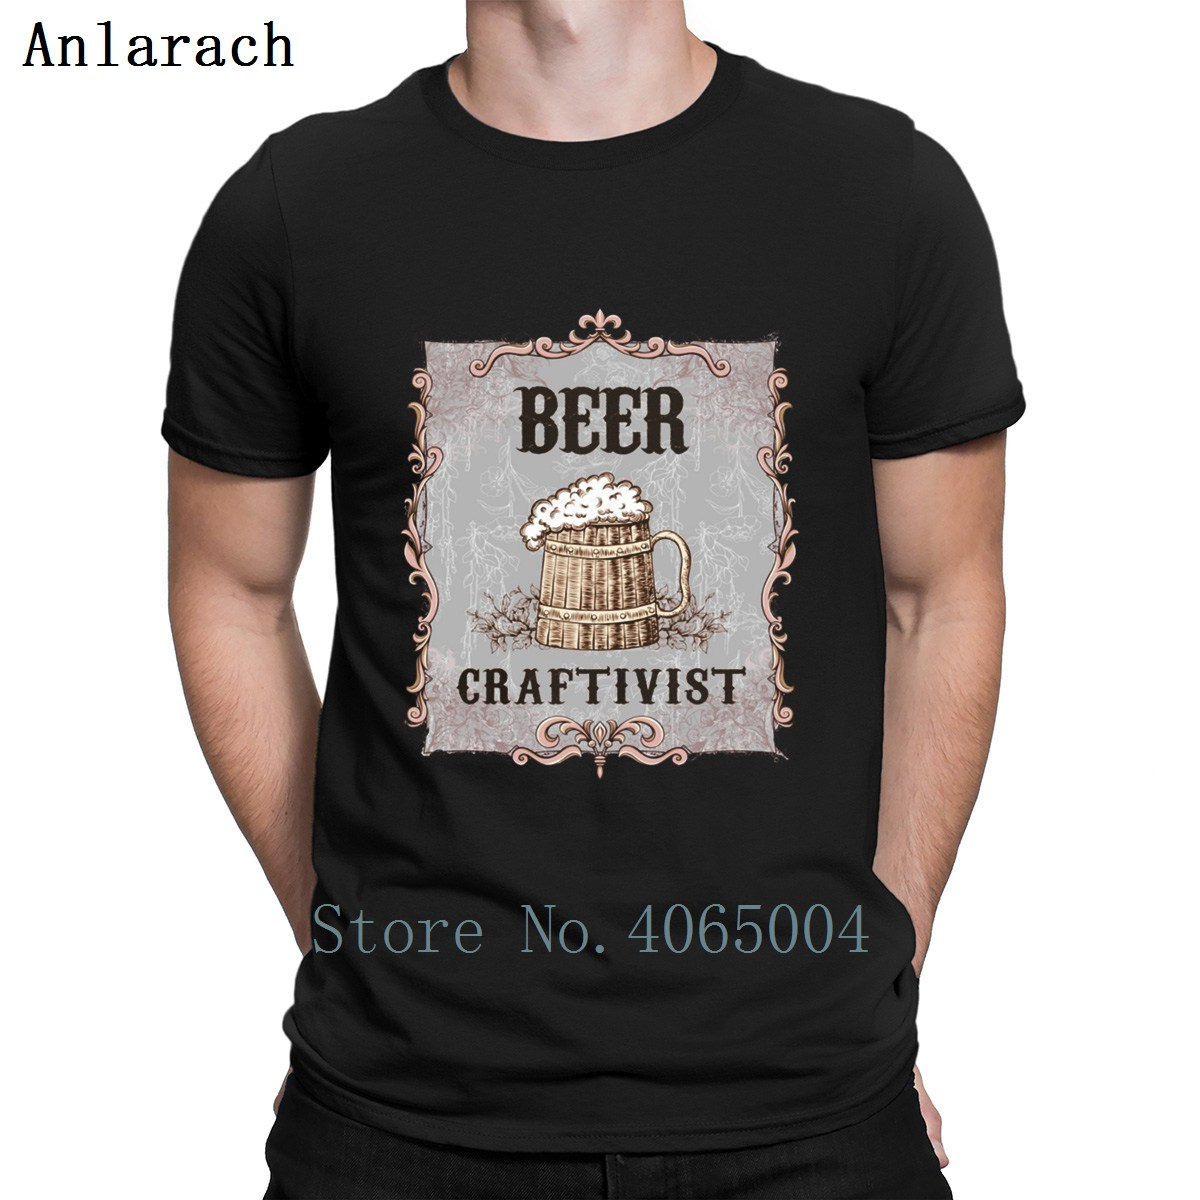 Beer Craftivist Brewmasters Of Craft T Shirt Tee Shirt Costume Sunlight Plus Size 3xl Summer New Style Designs Formal Shirt